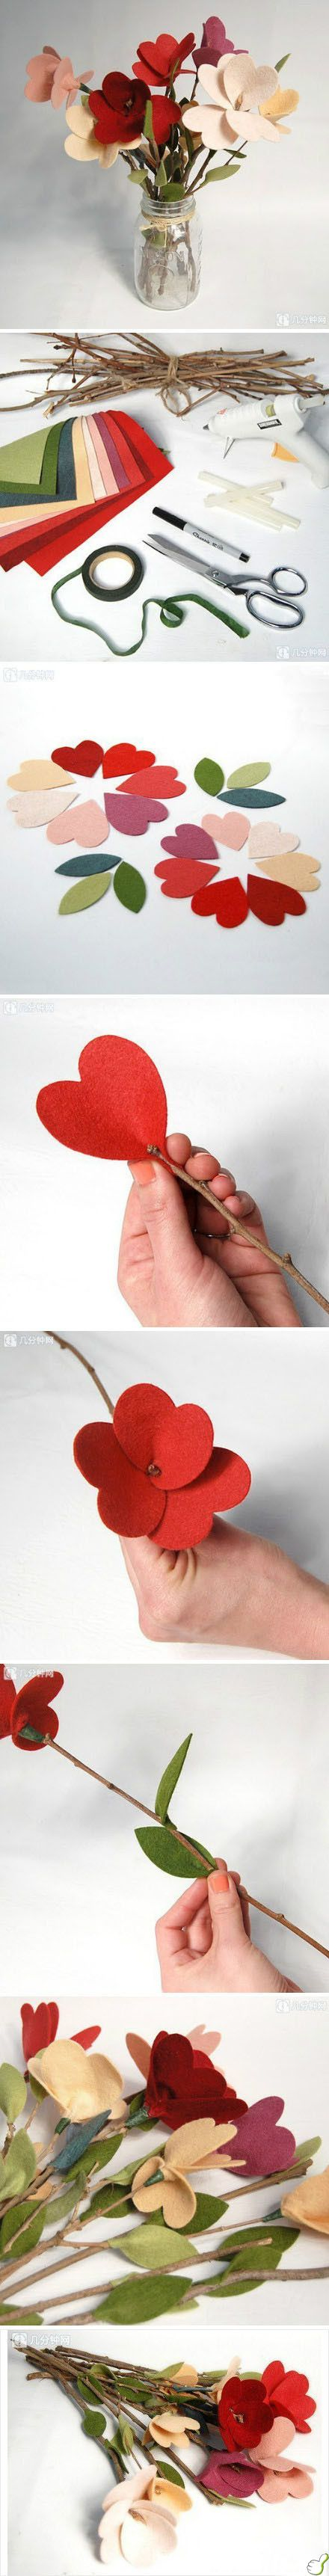 Felt Flowers photo tutorial